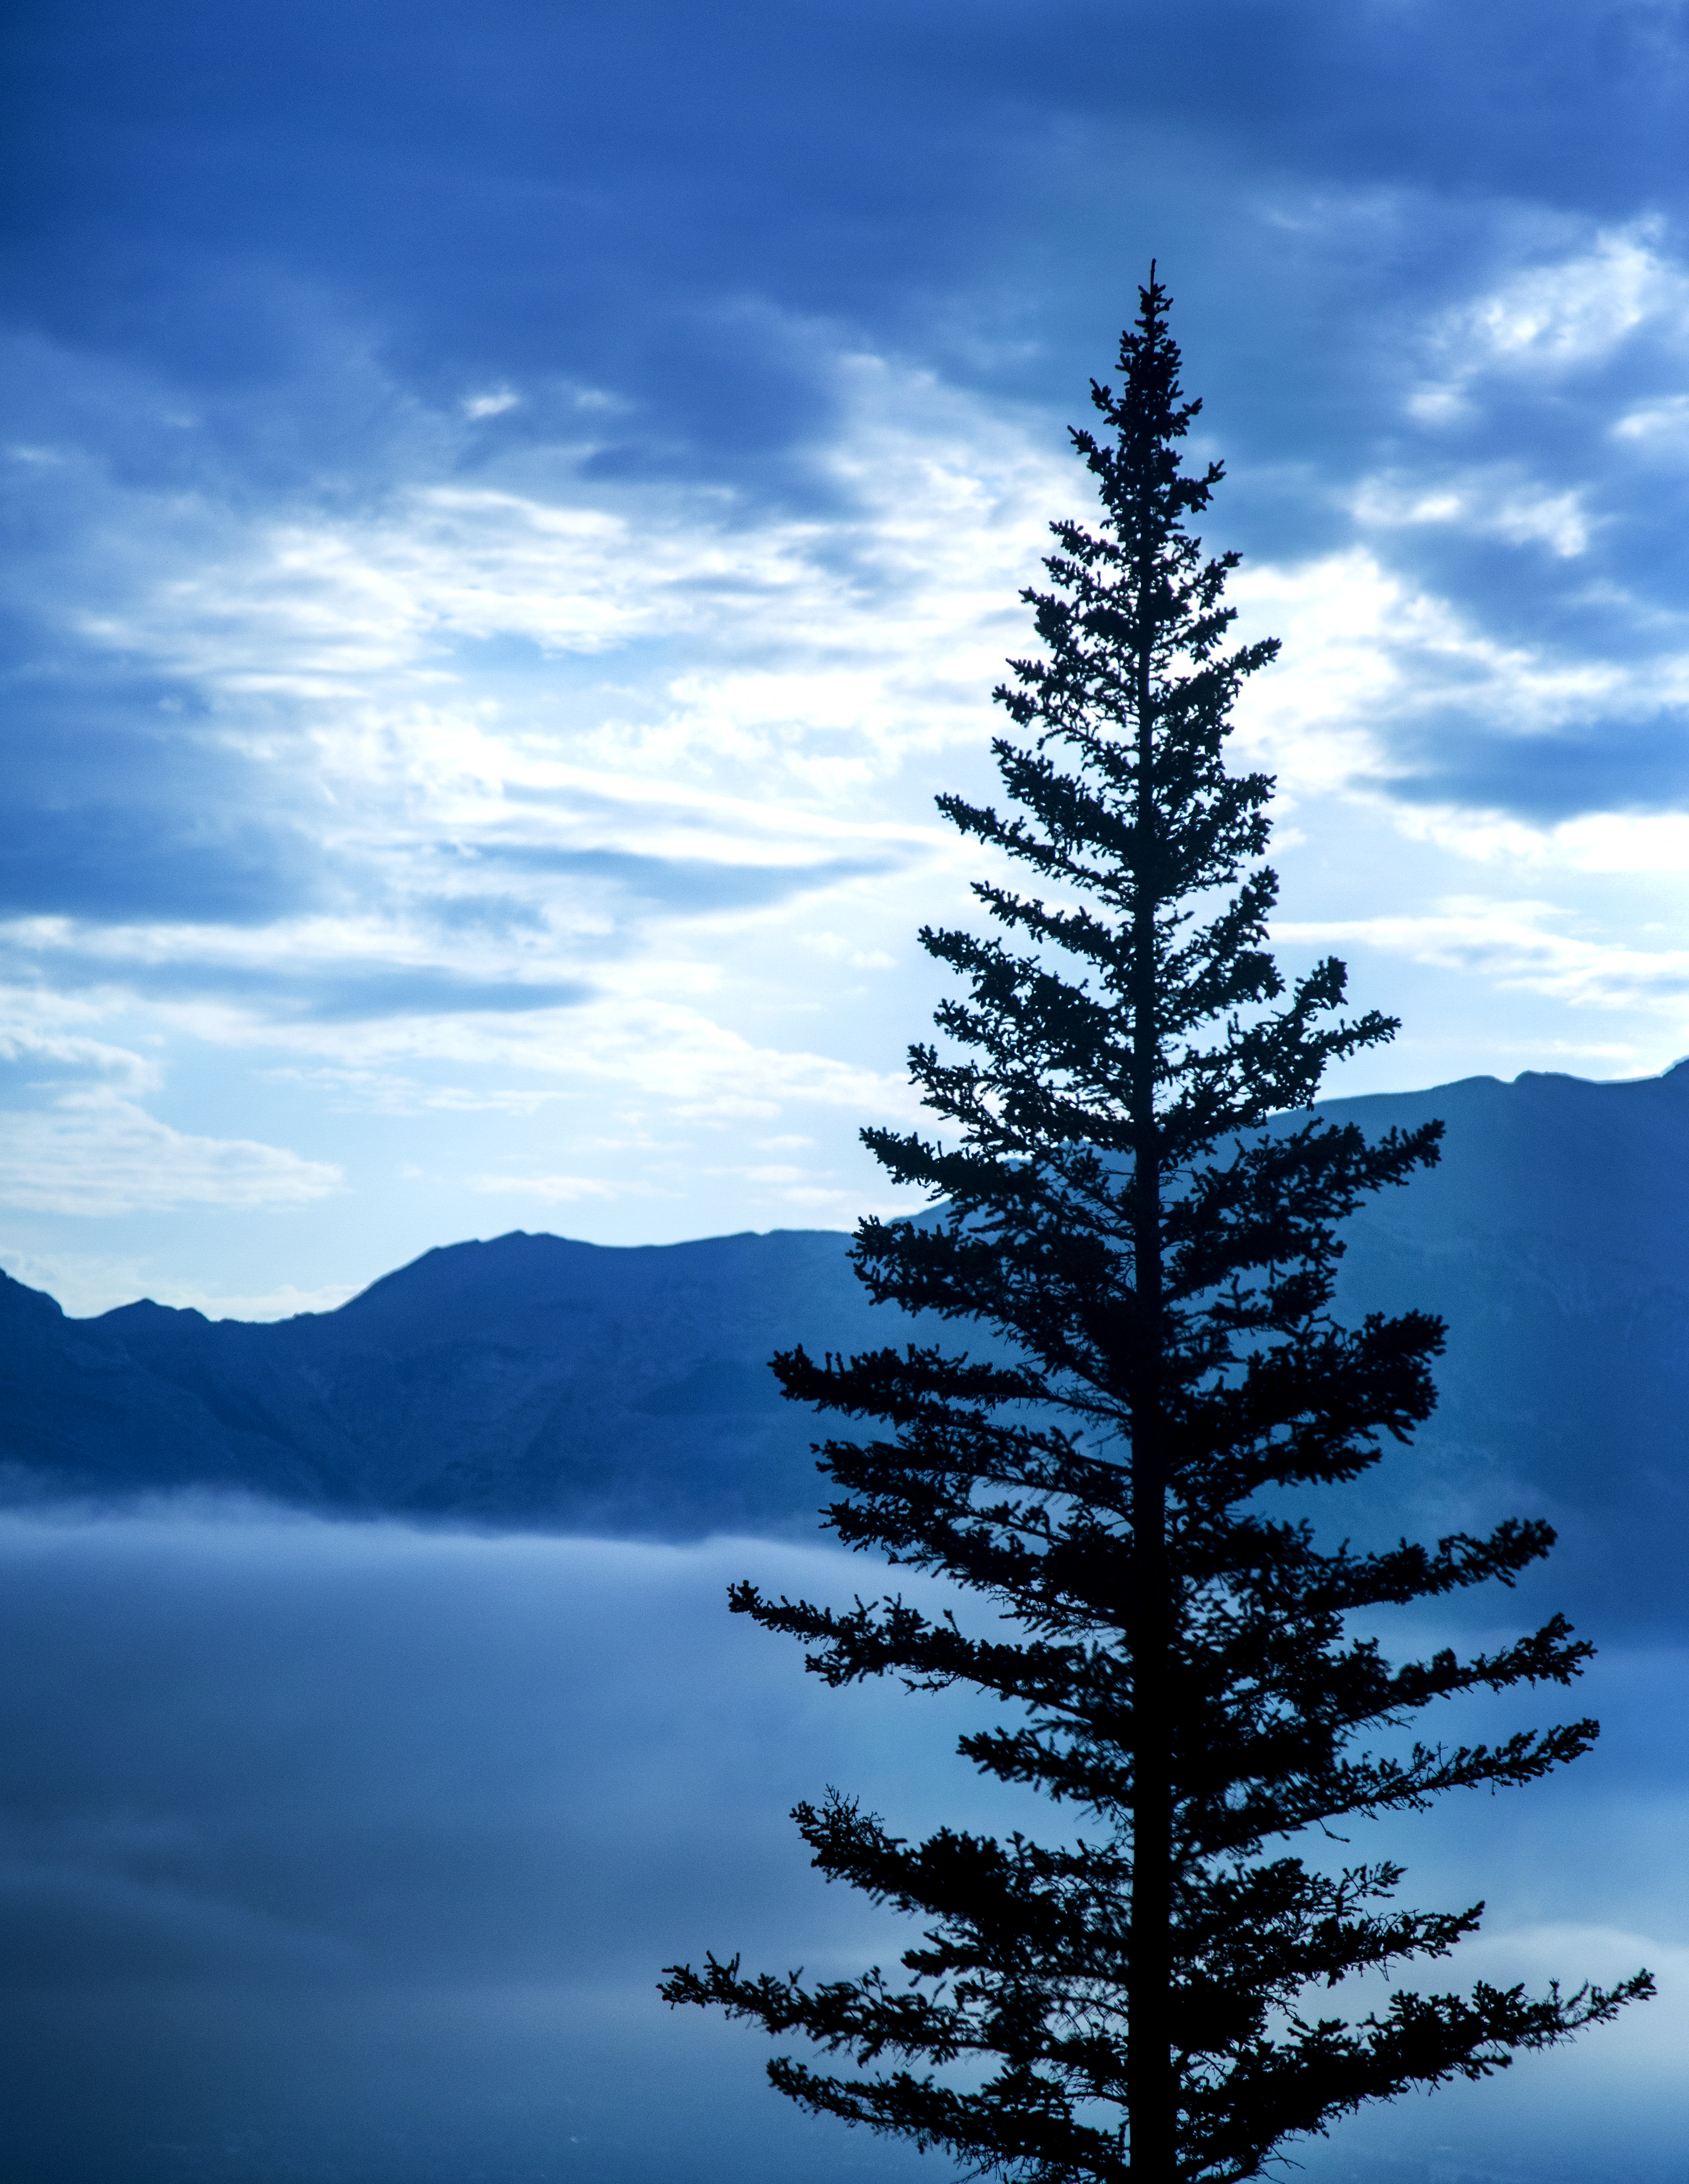 A tree is shilouetted against the sky above a foggy valley.